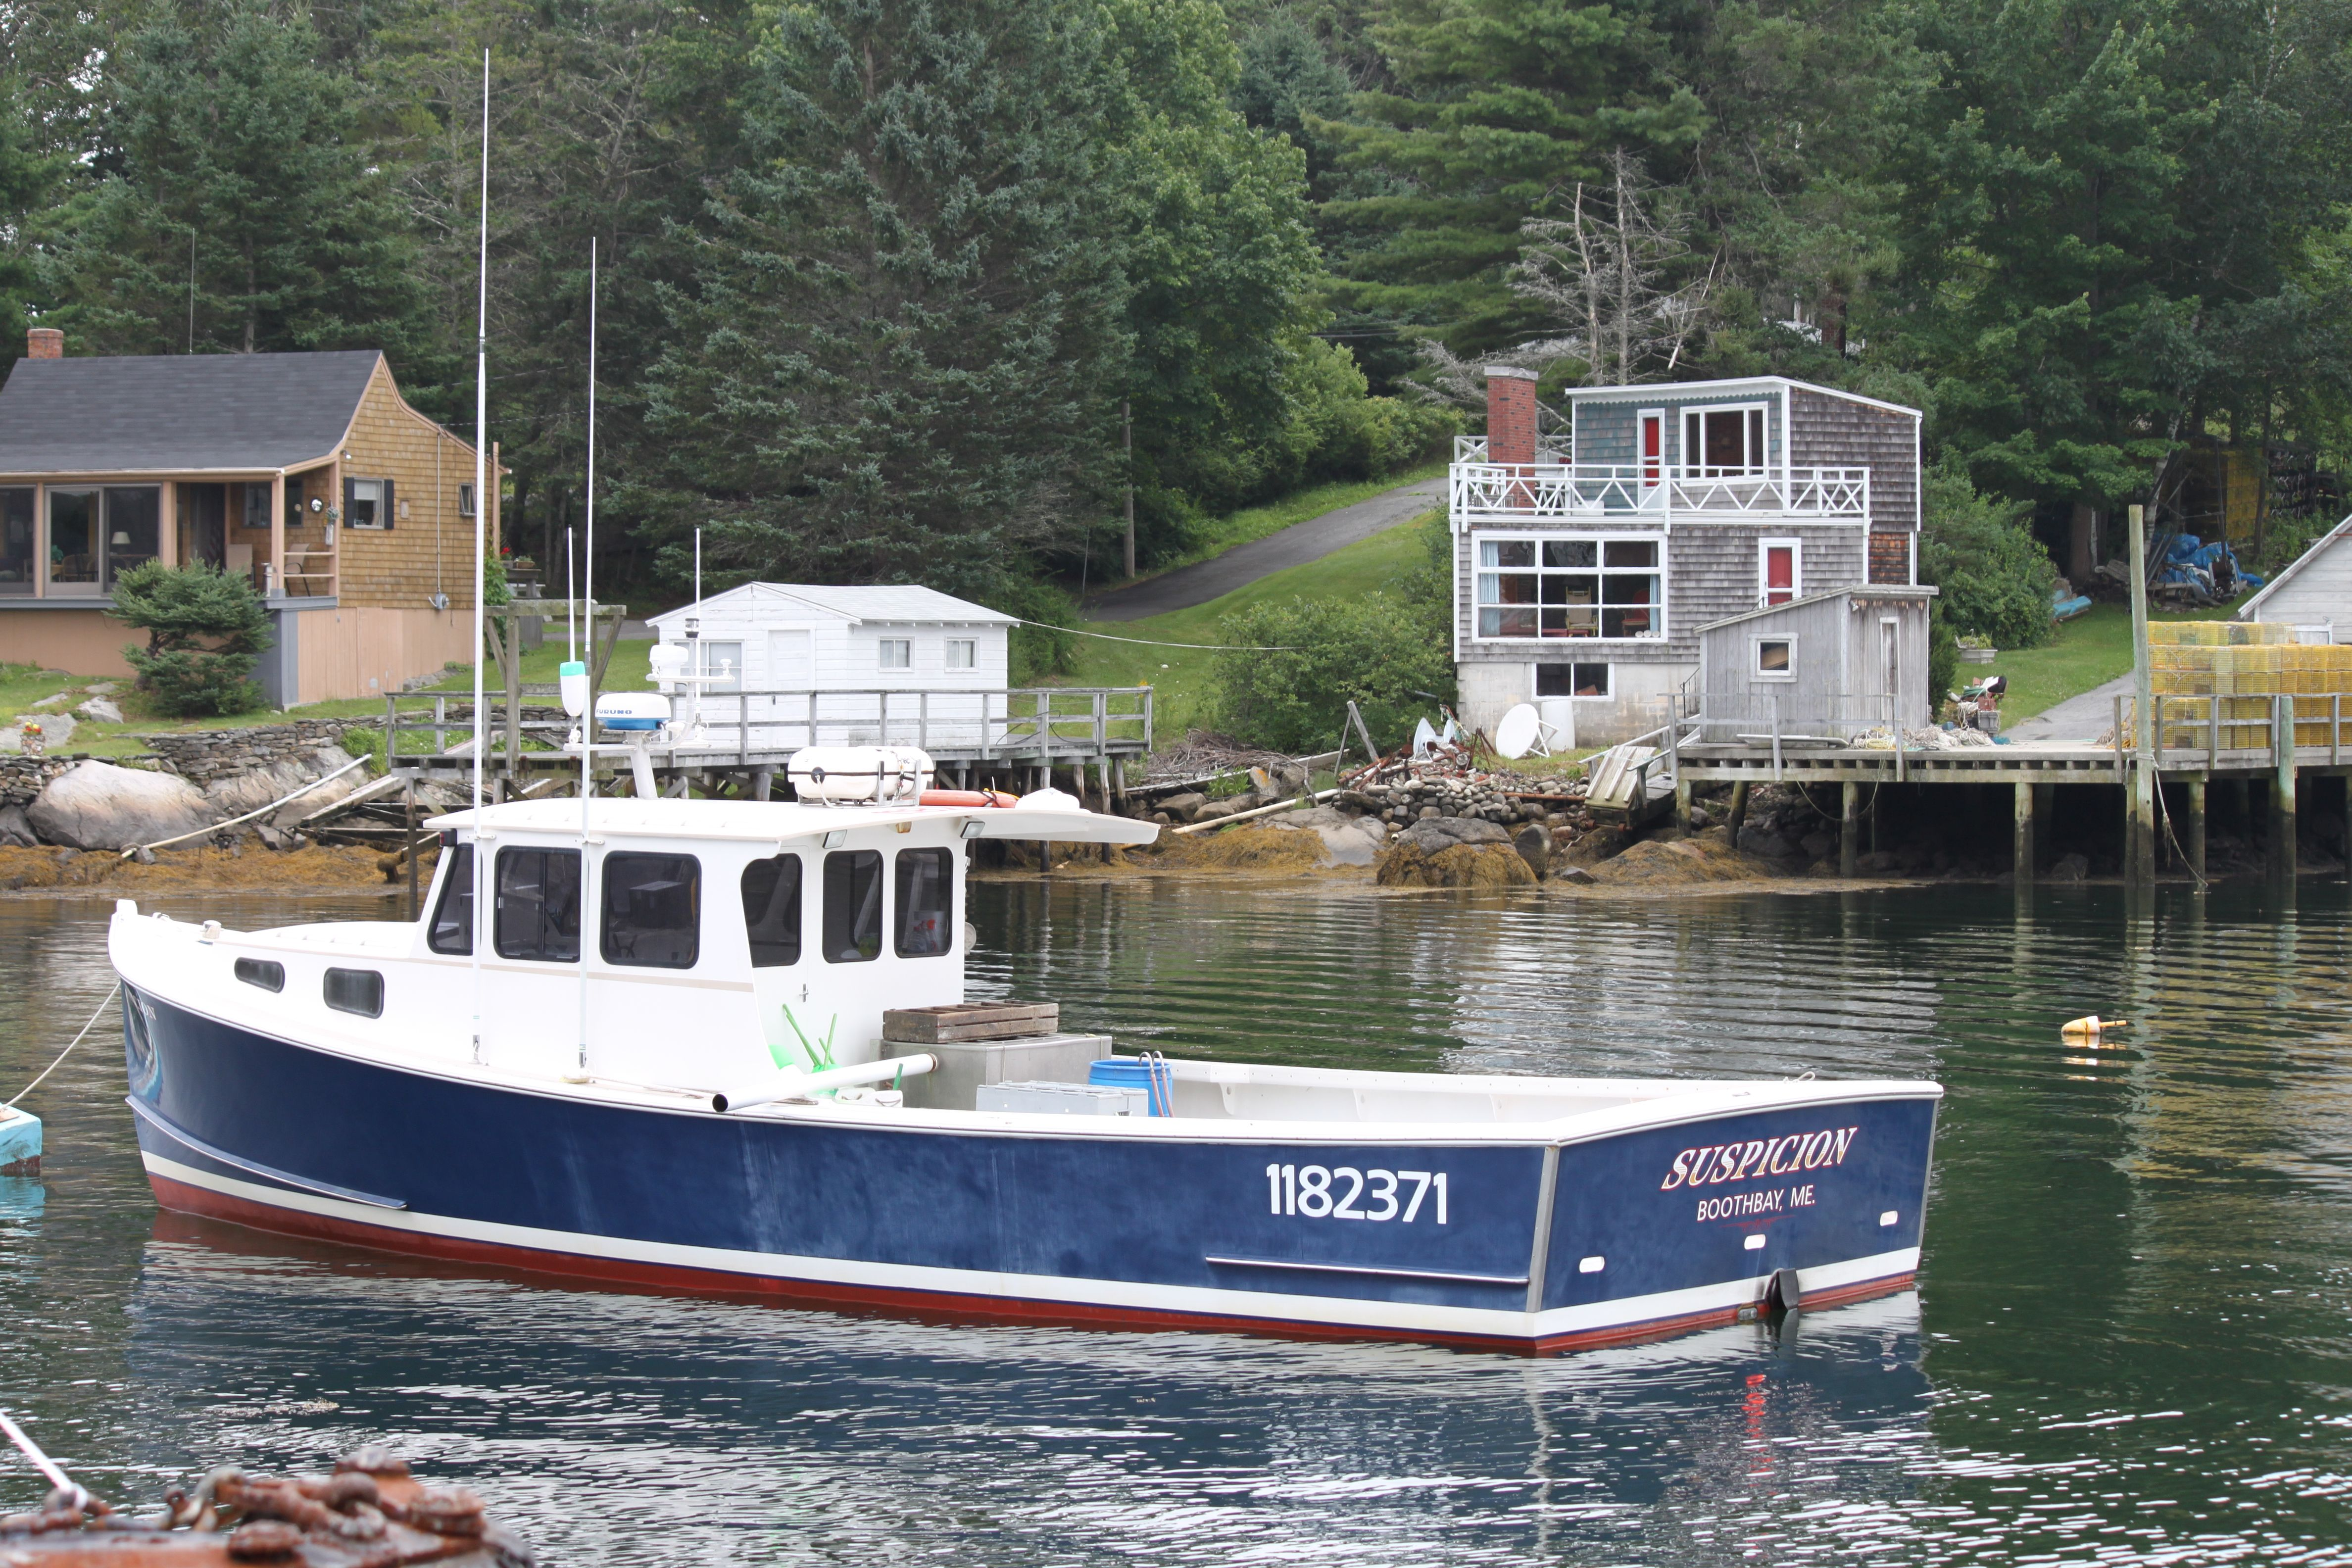 Lobster Boat, Boothbay Harbor, Maine Lobster boat